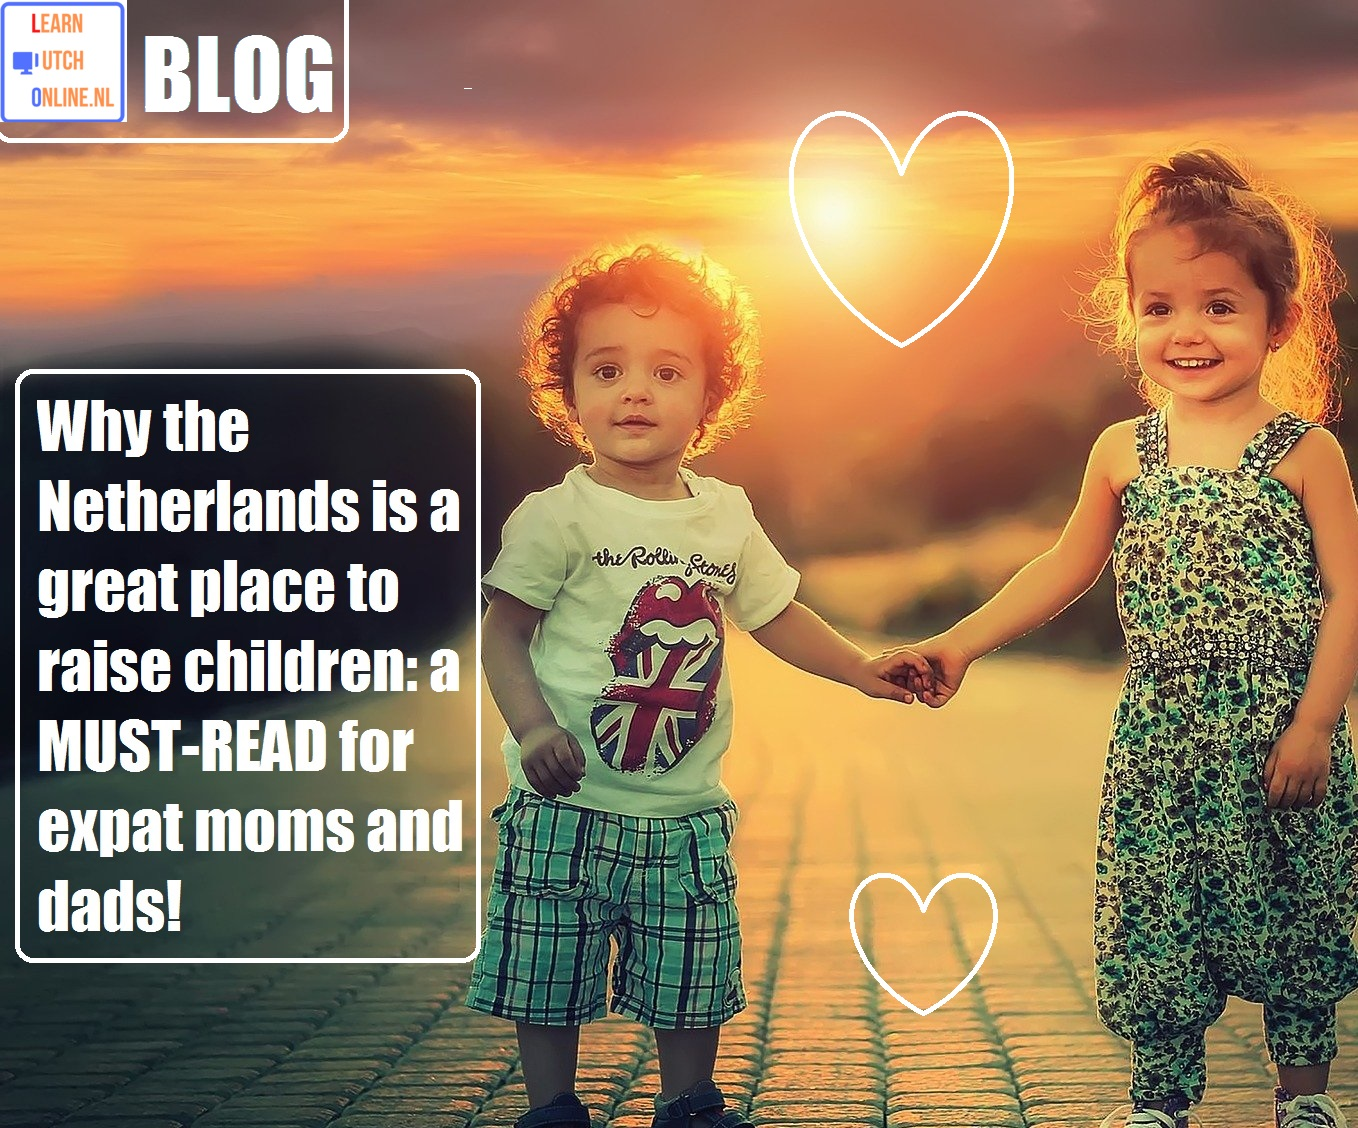 15 reasons why Holland is a great place to raise children: a MUST-READ for expat moms and dads!